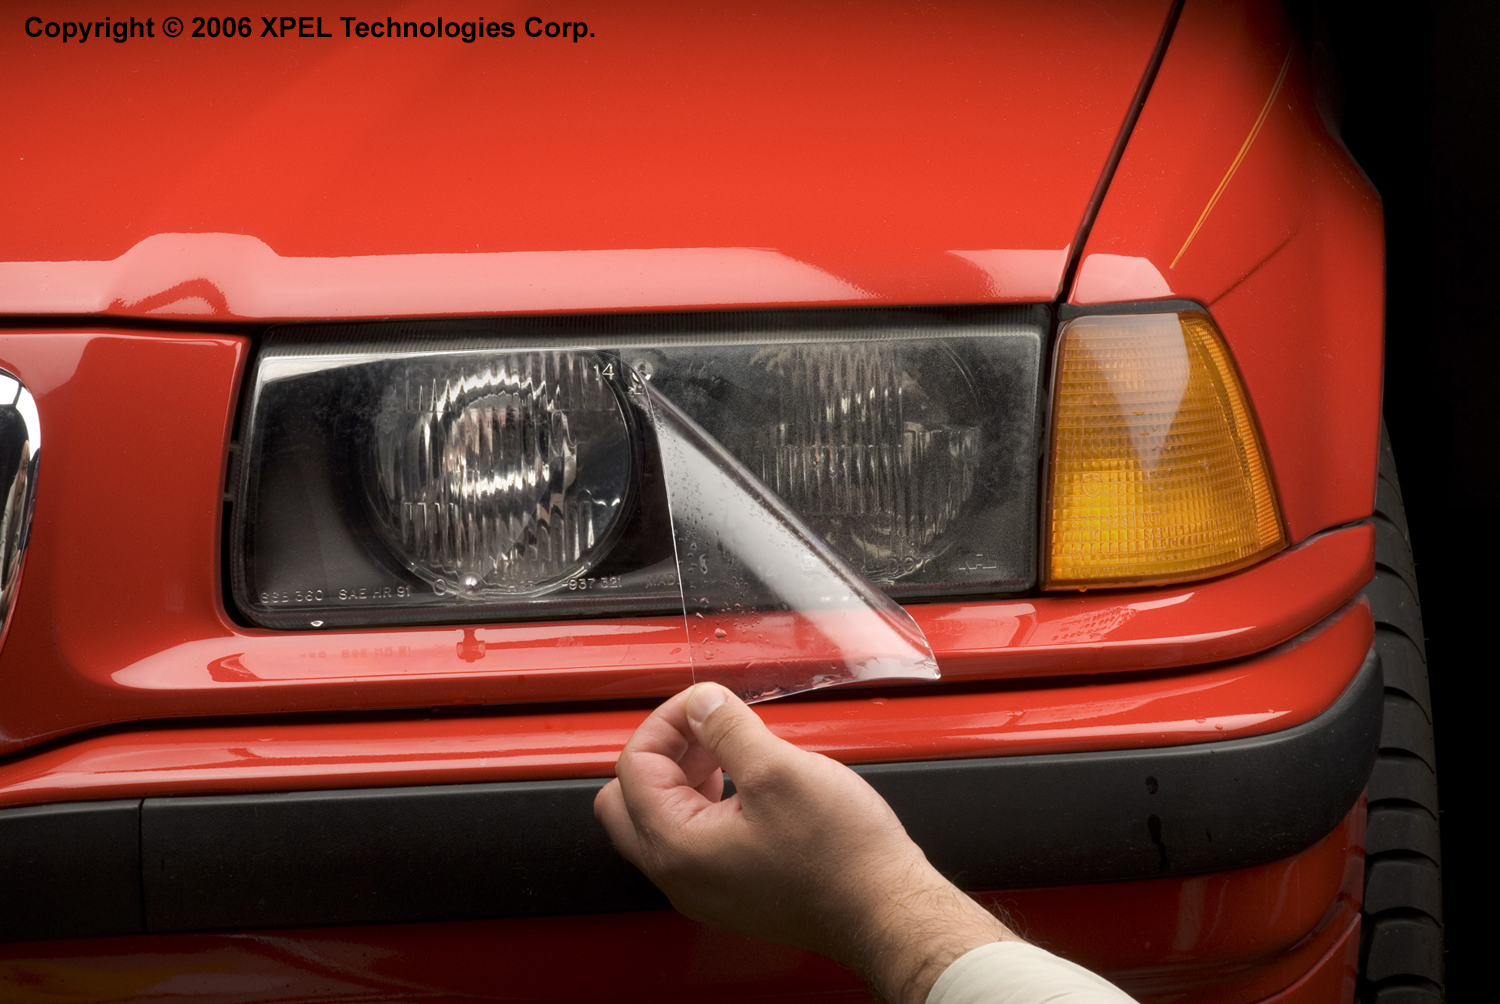 XPEL H1918 Clear Headlamp and Fog Lamp Protection Kit